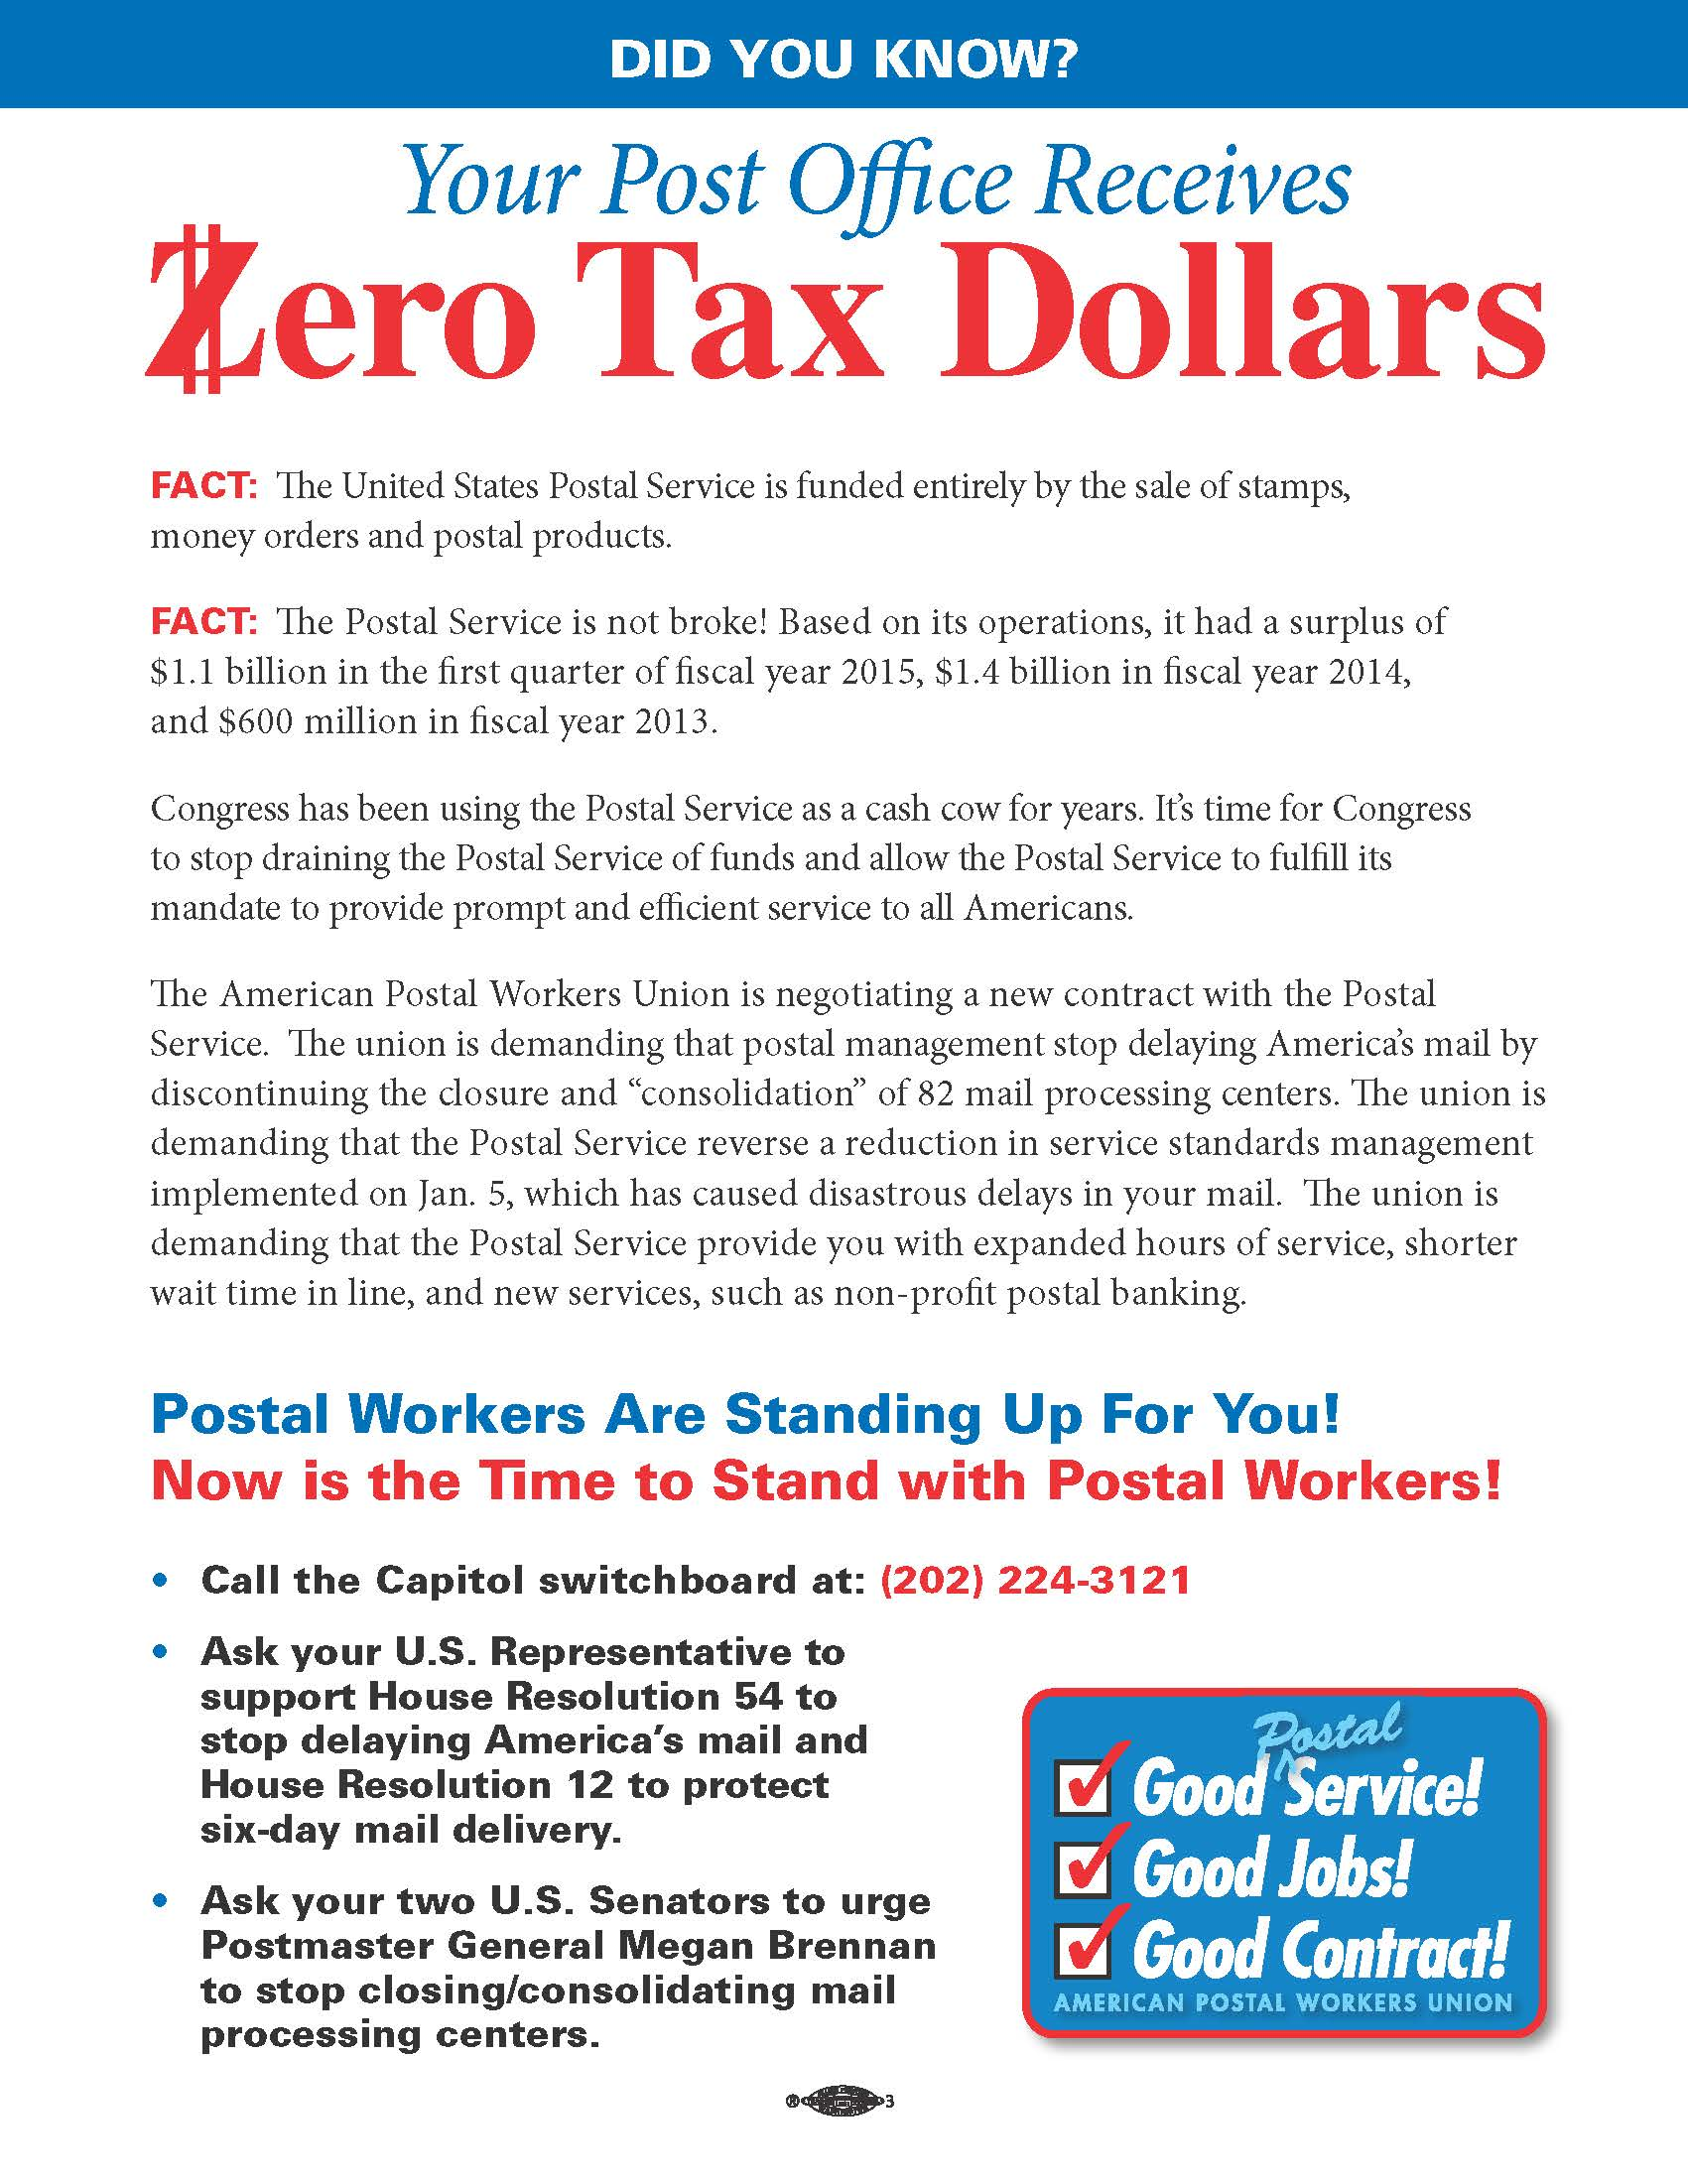 APWU: Your Post Office Gets Zero Tax Dollars